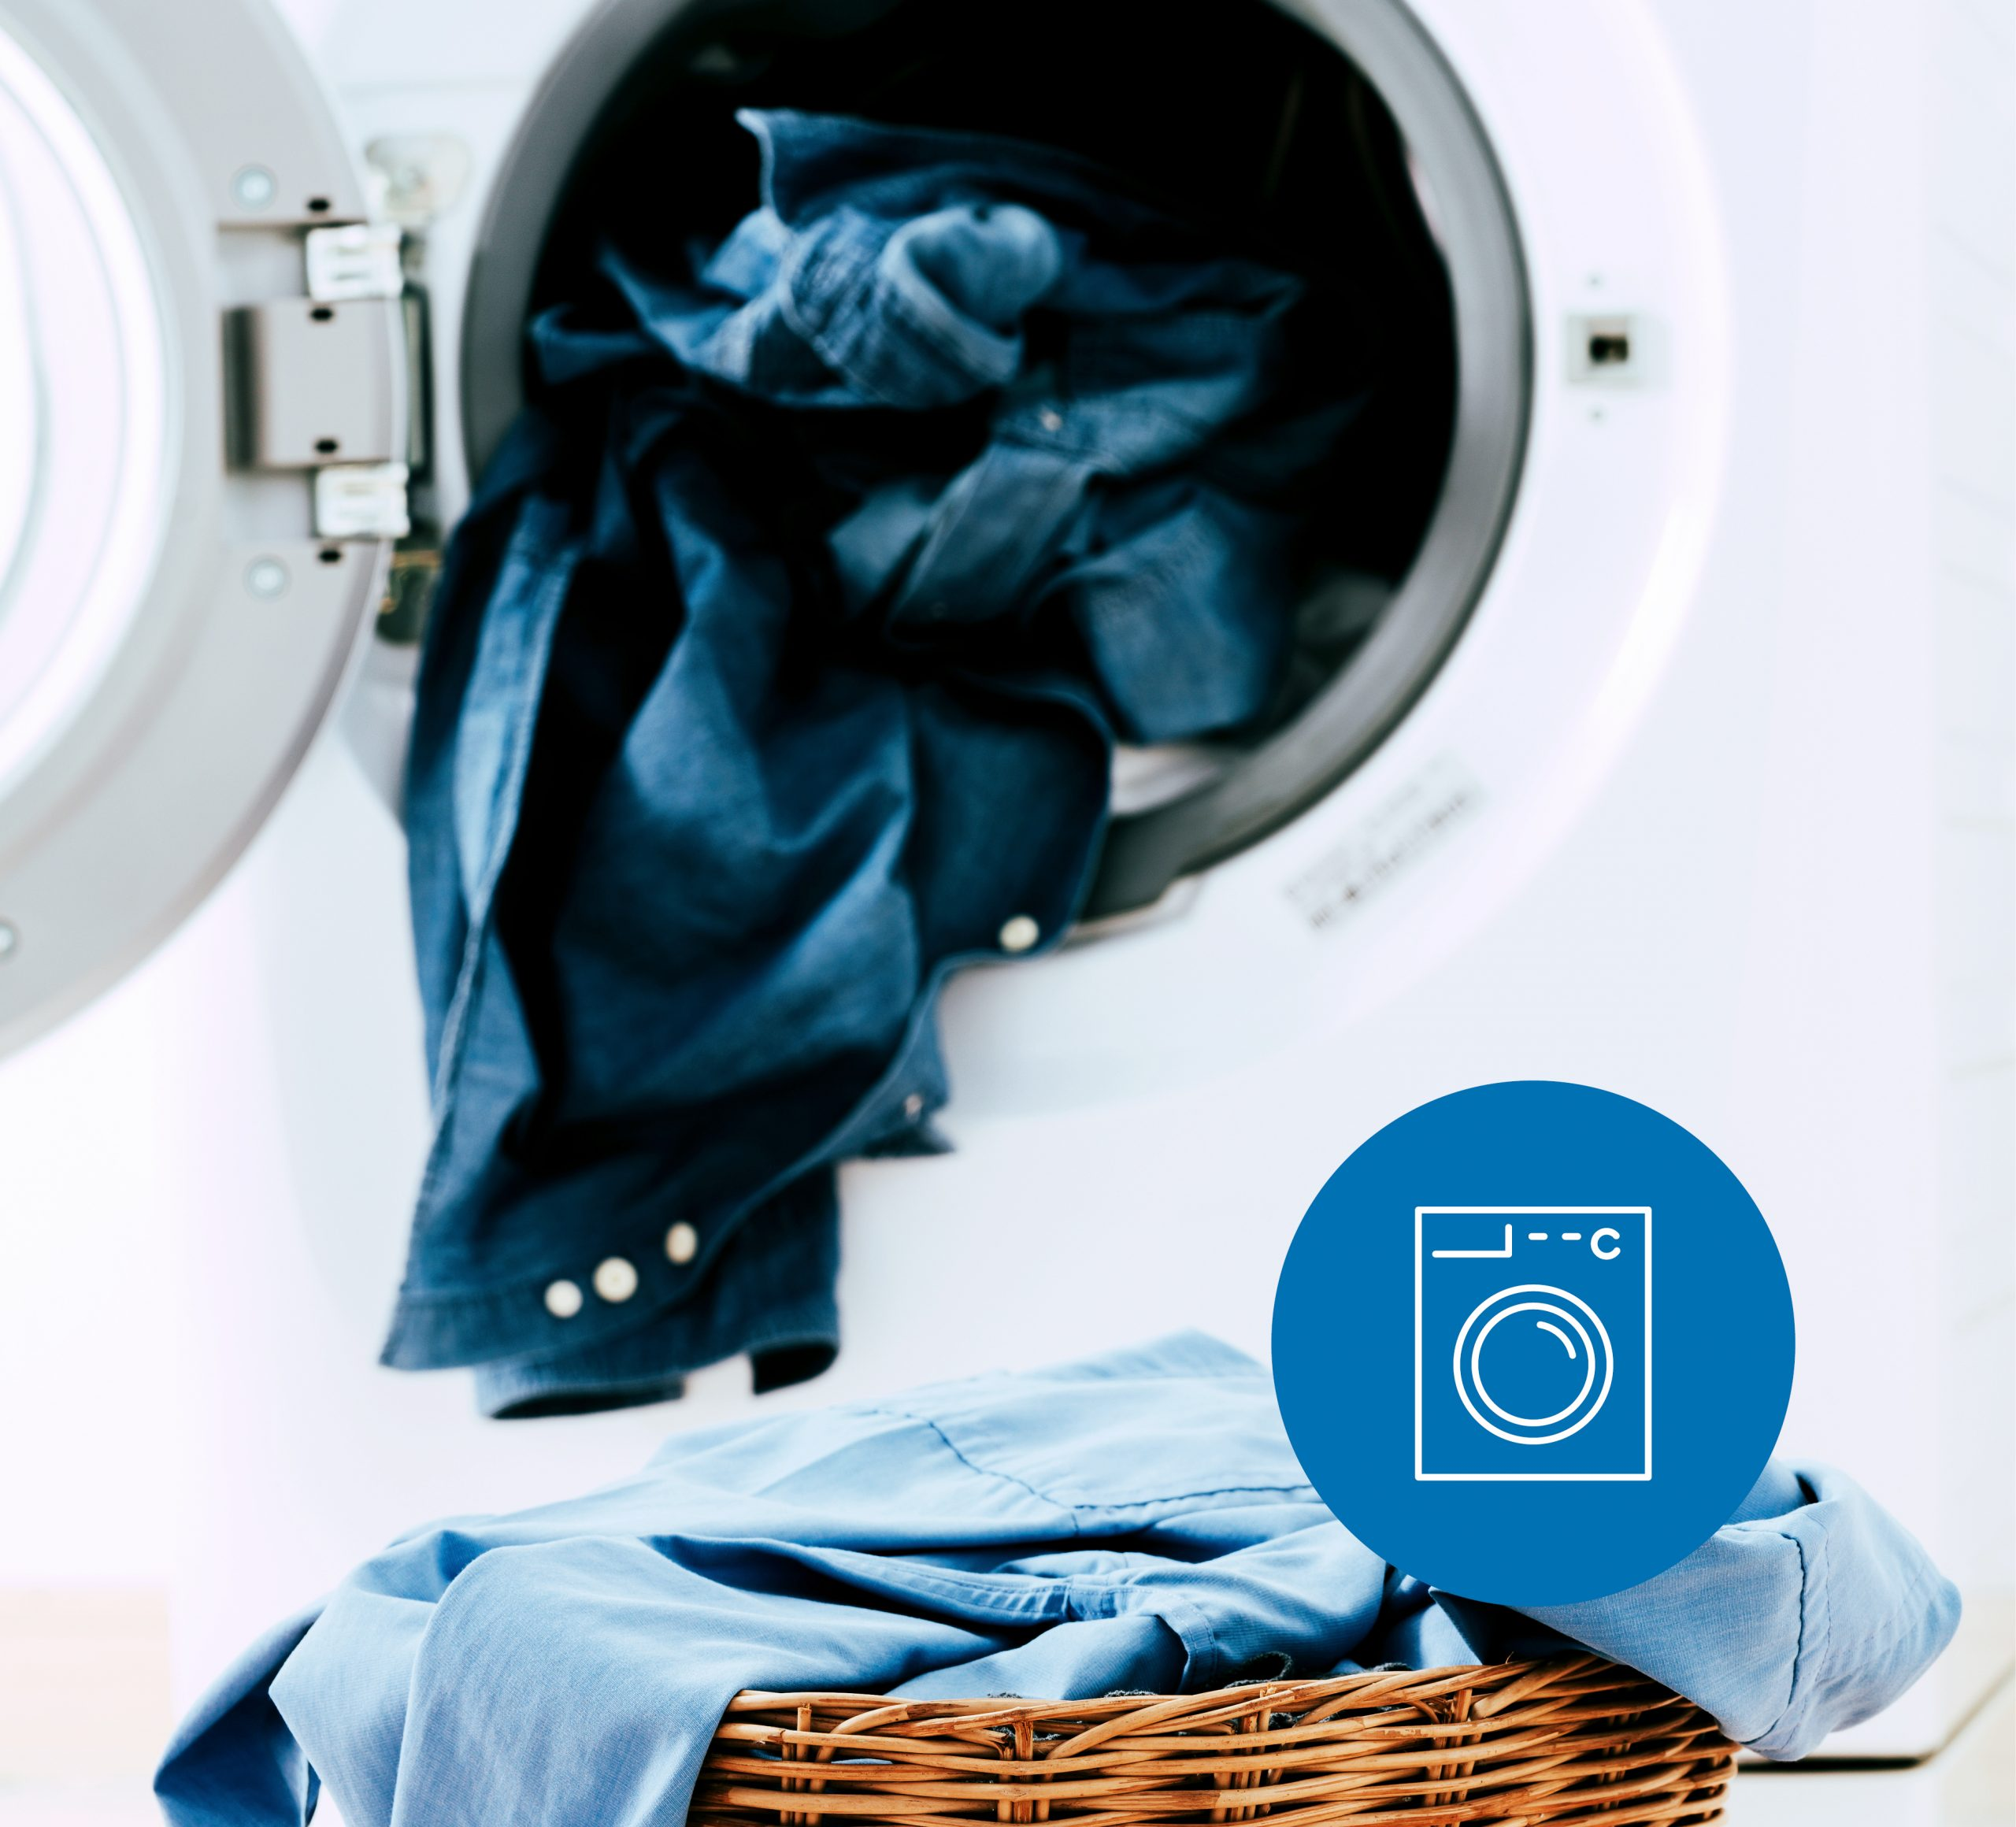 Pudol laundry overview